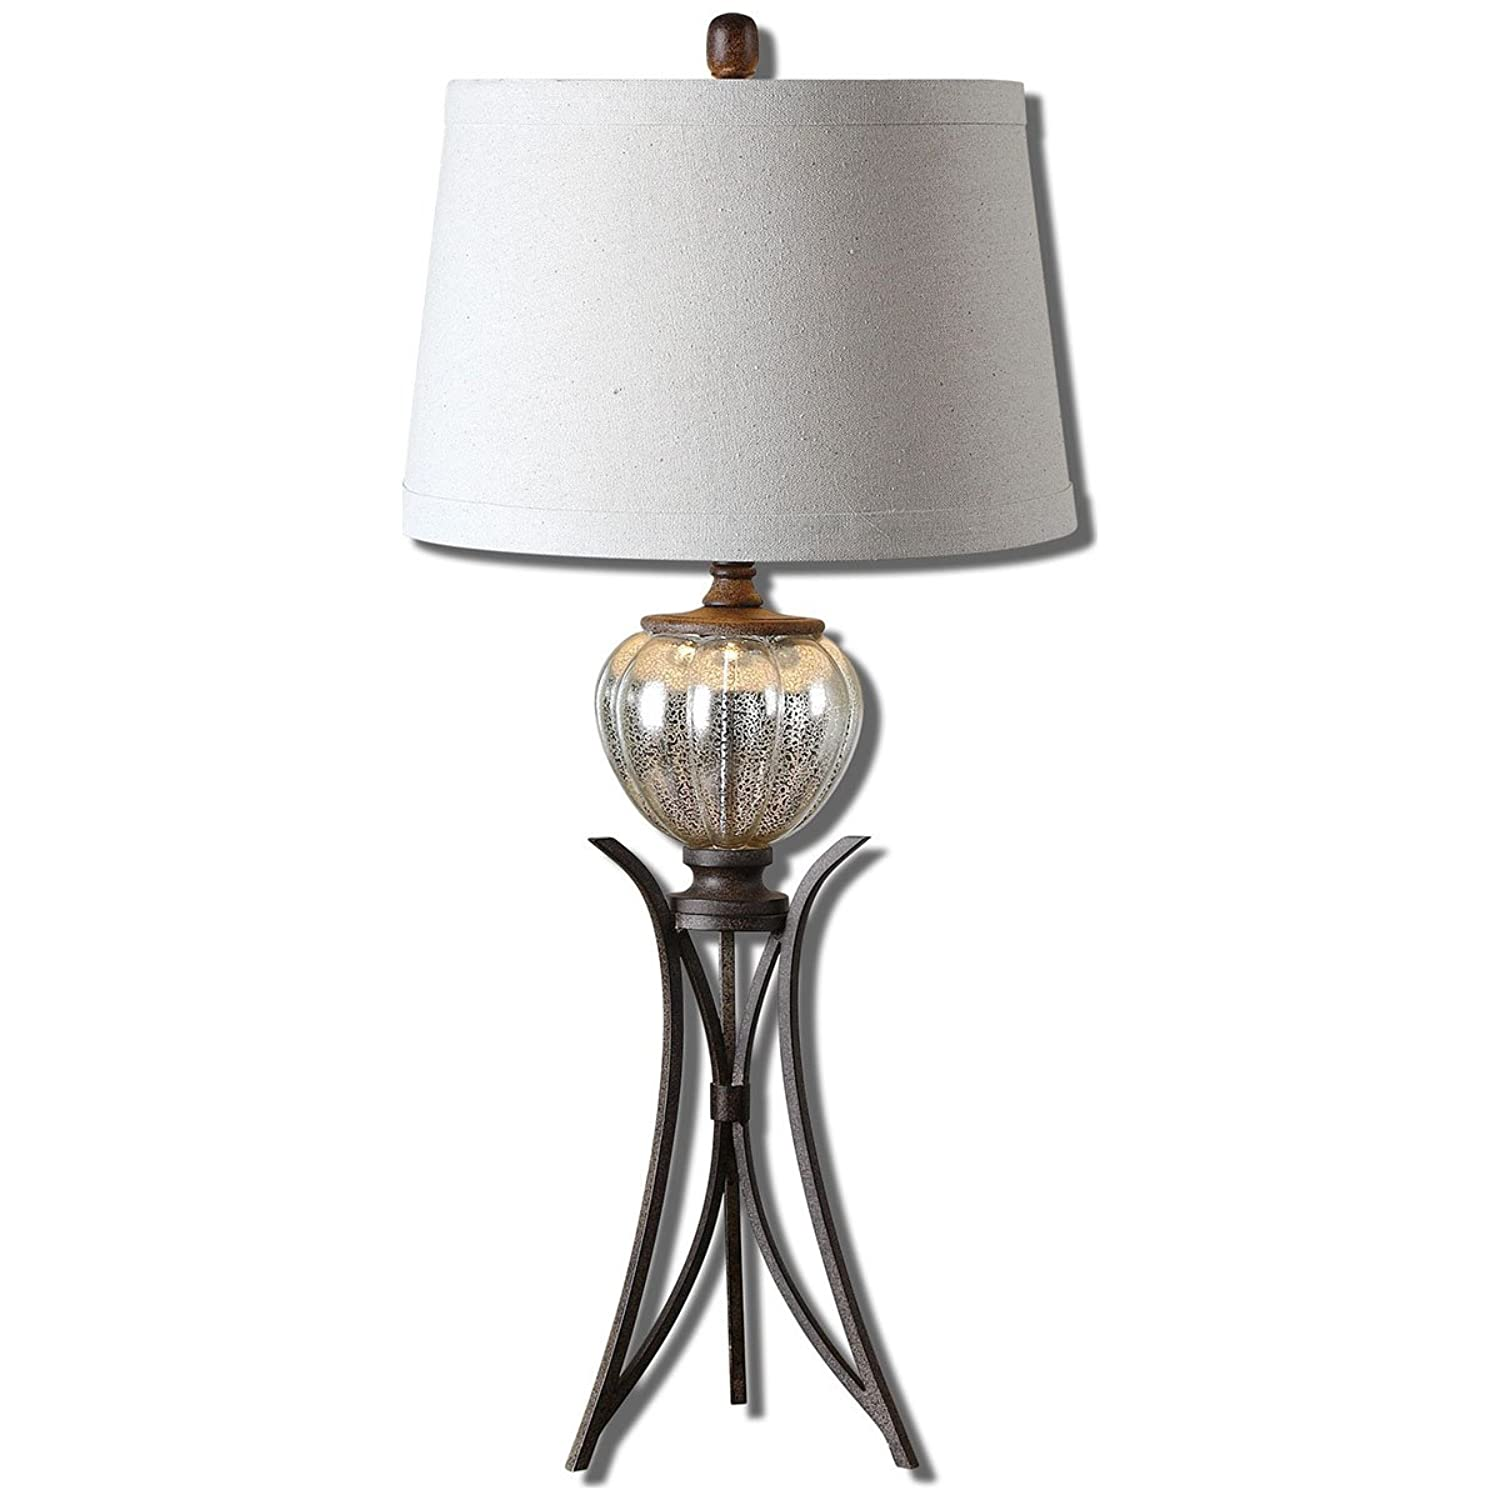 Uttermost 26598 Cebrario Mercury Glass Table Lamp by Uttermost